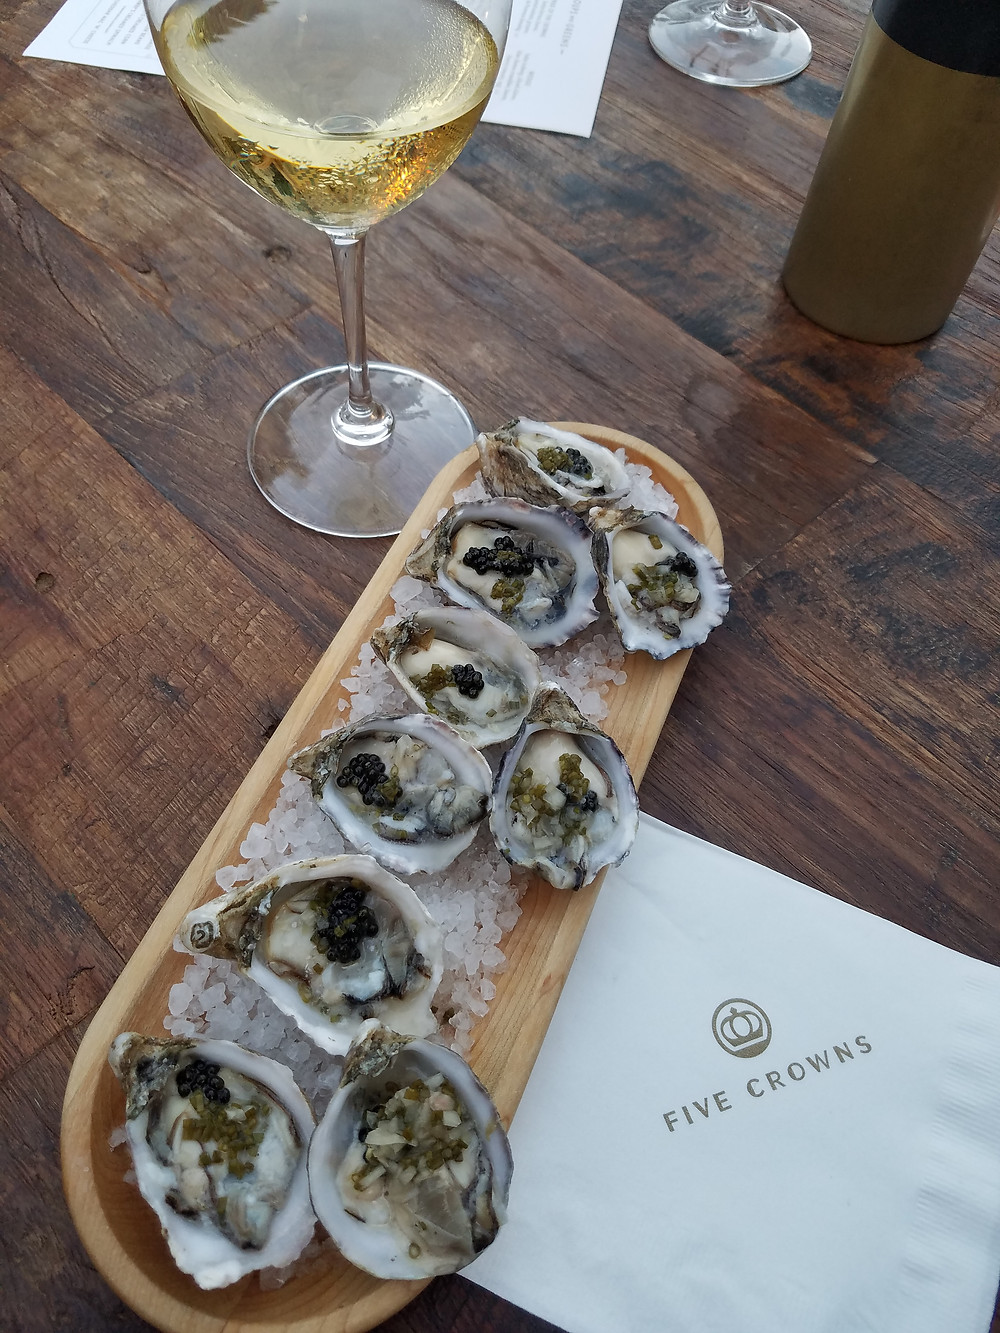 Kushi oysters with mignonette and caviar